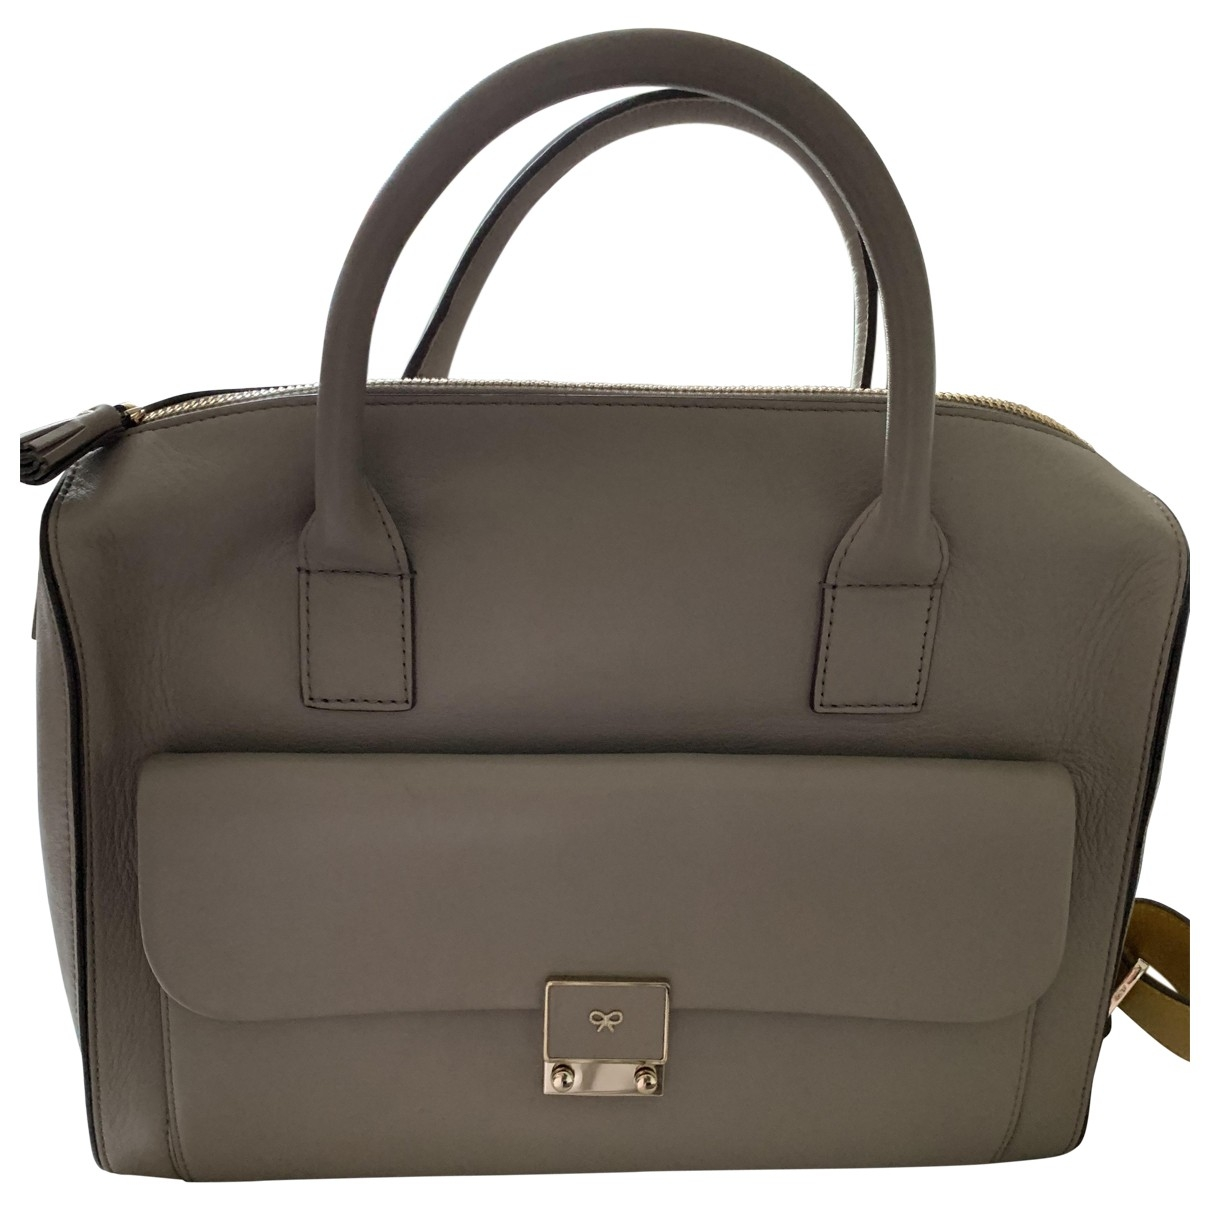 Anya Hindmarch \N Leather handbag for Women \N